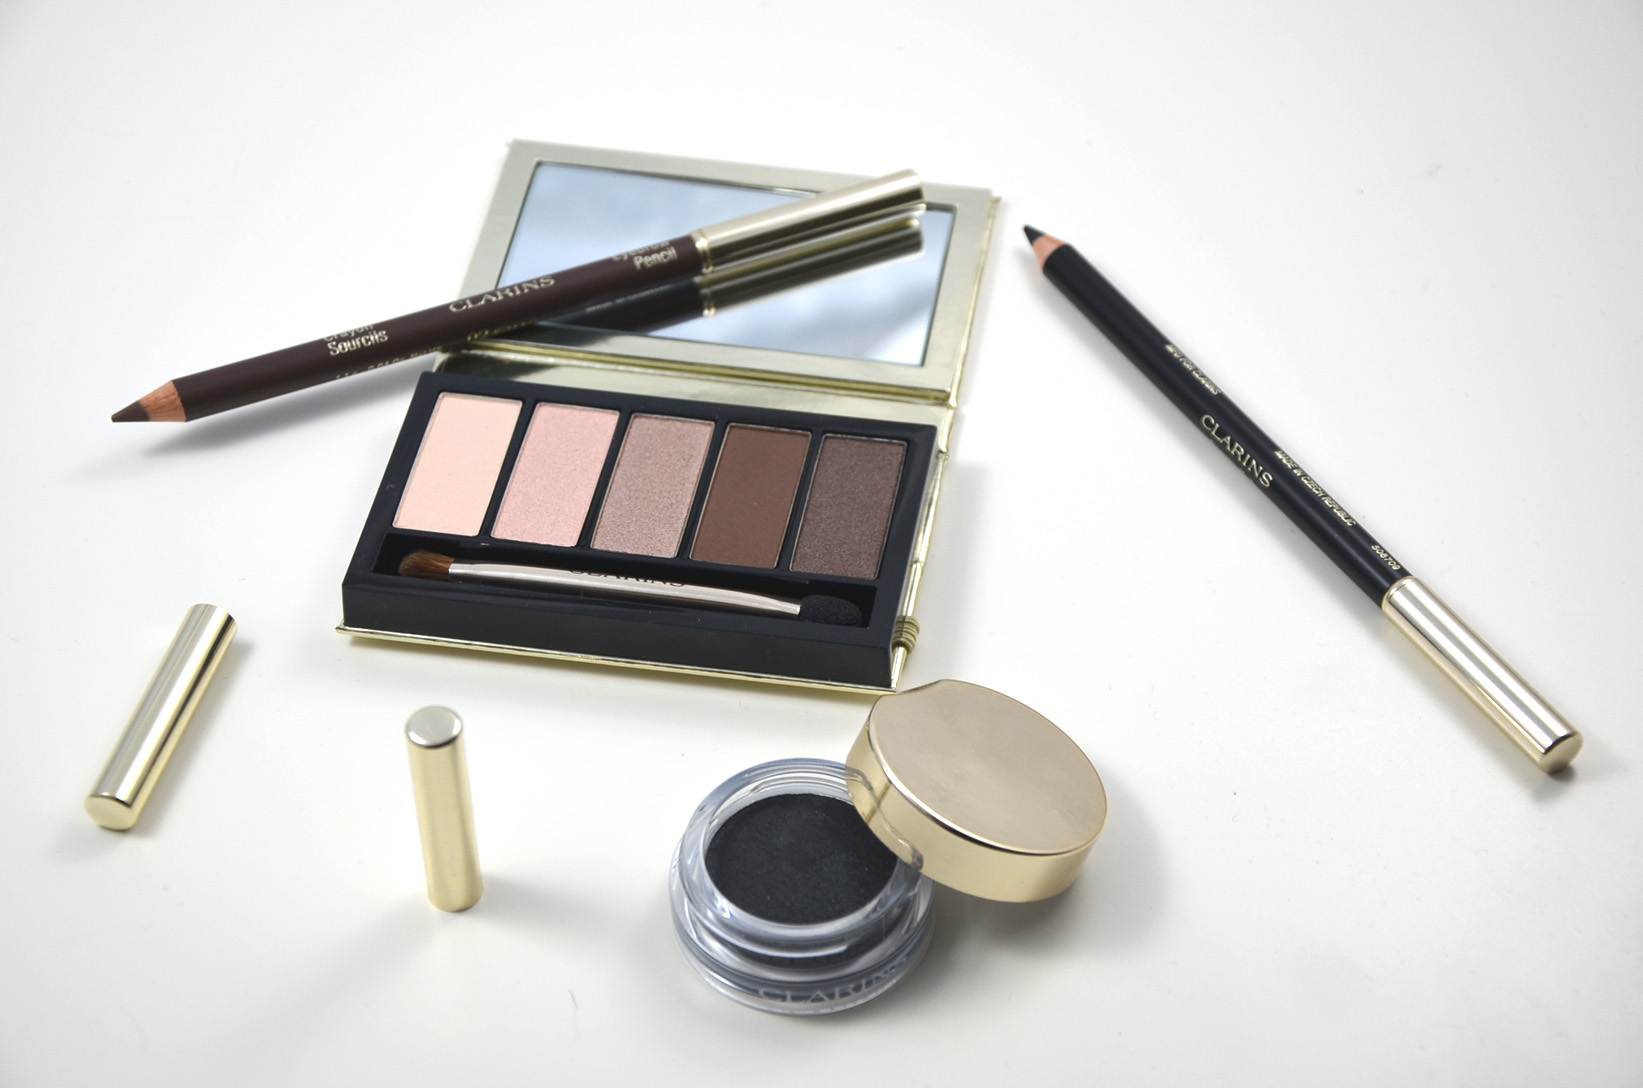 Clarins Pretty Day & Night Autumm Make-up Collection